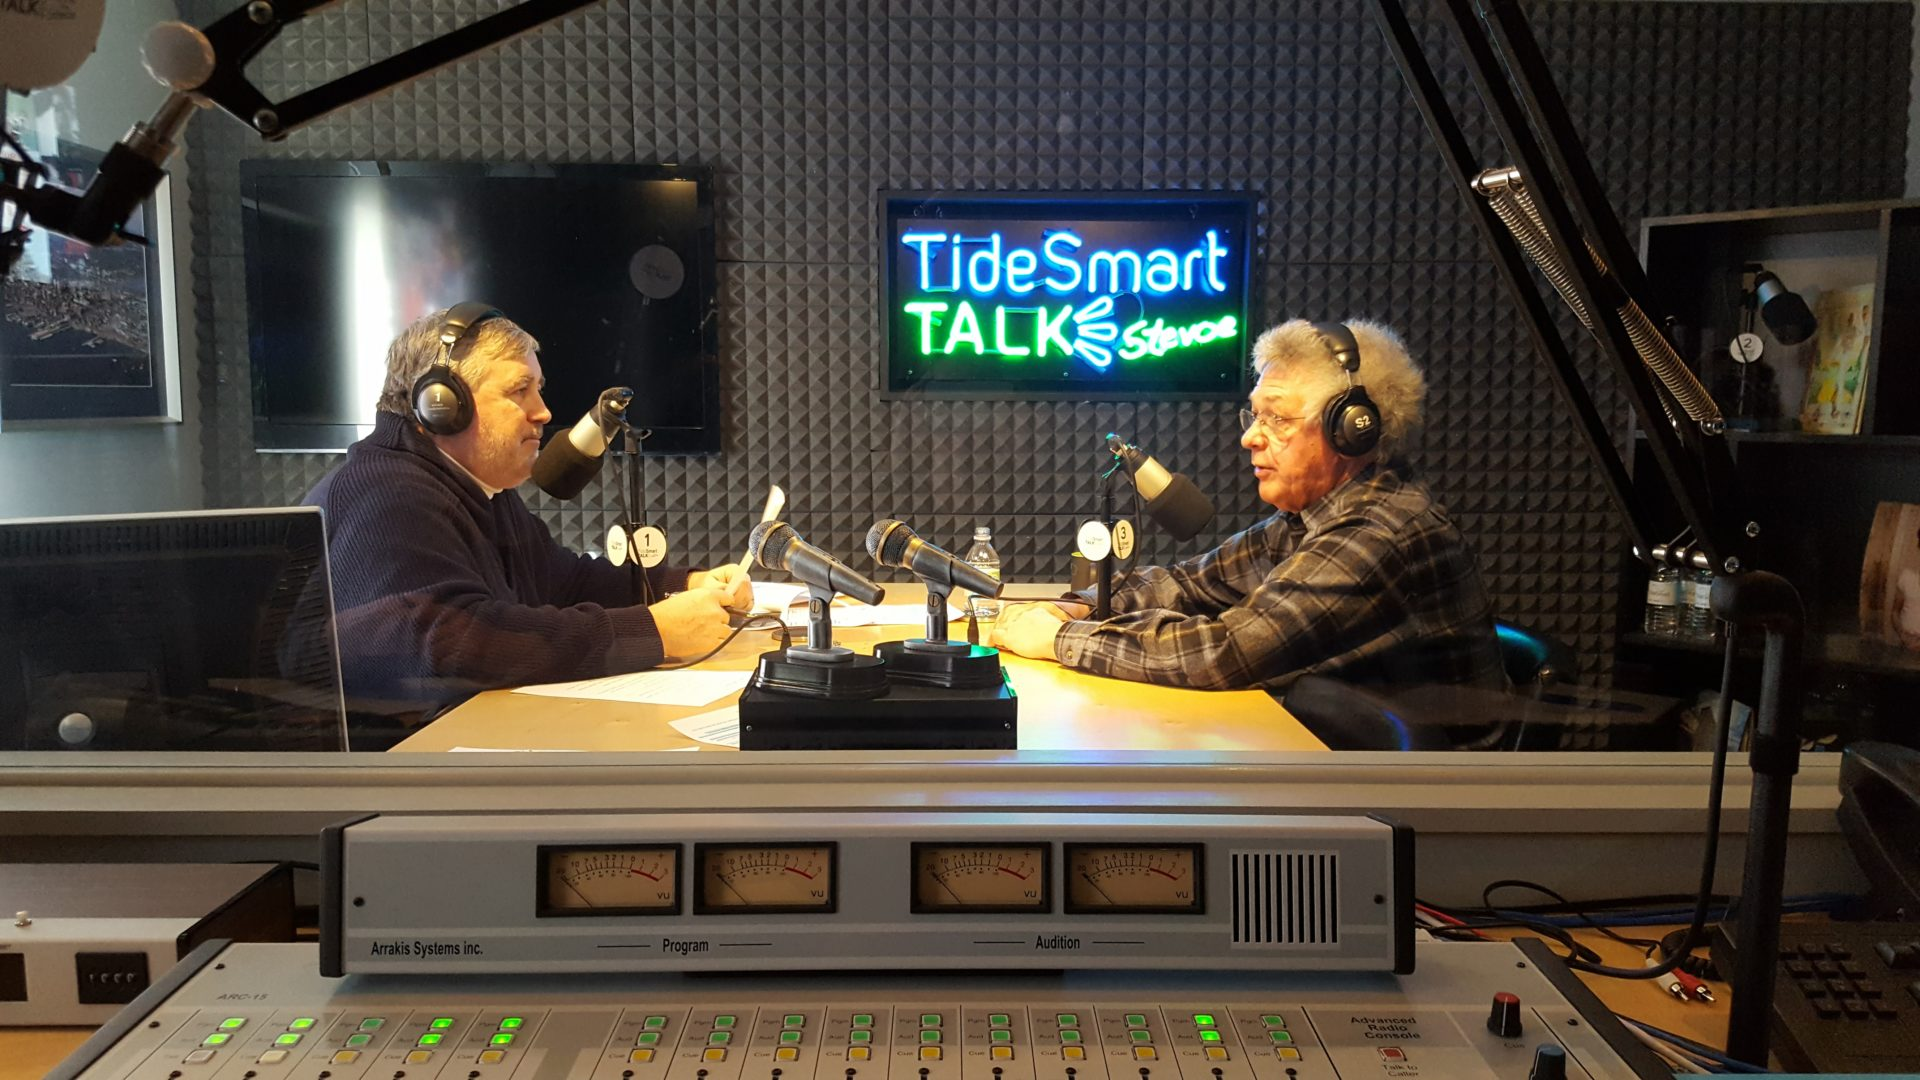 Host of TideSmart Talk with Stevoe, Steve Woods, welcomed Chris Sauer, Co-Founder & CEO of Ocean Renewable Power Company (at right).